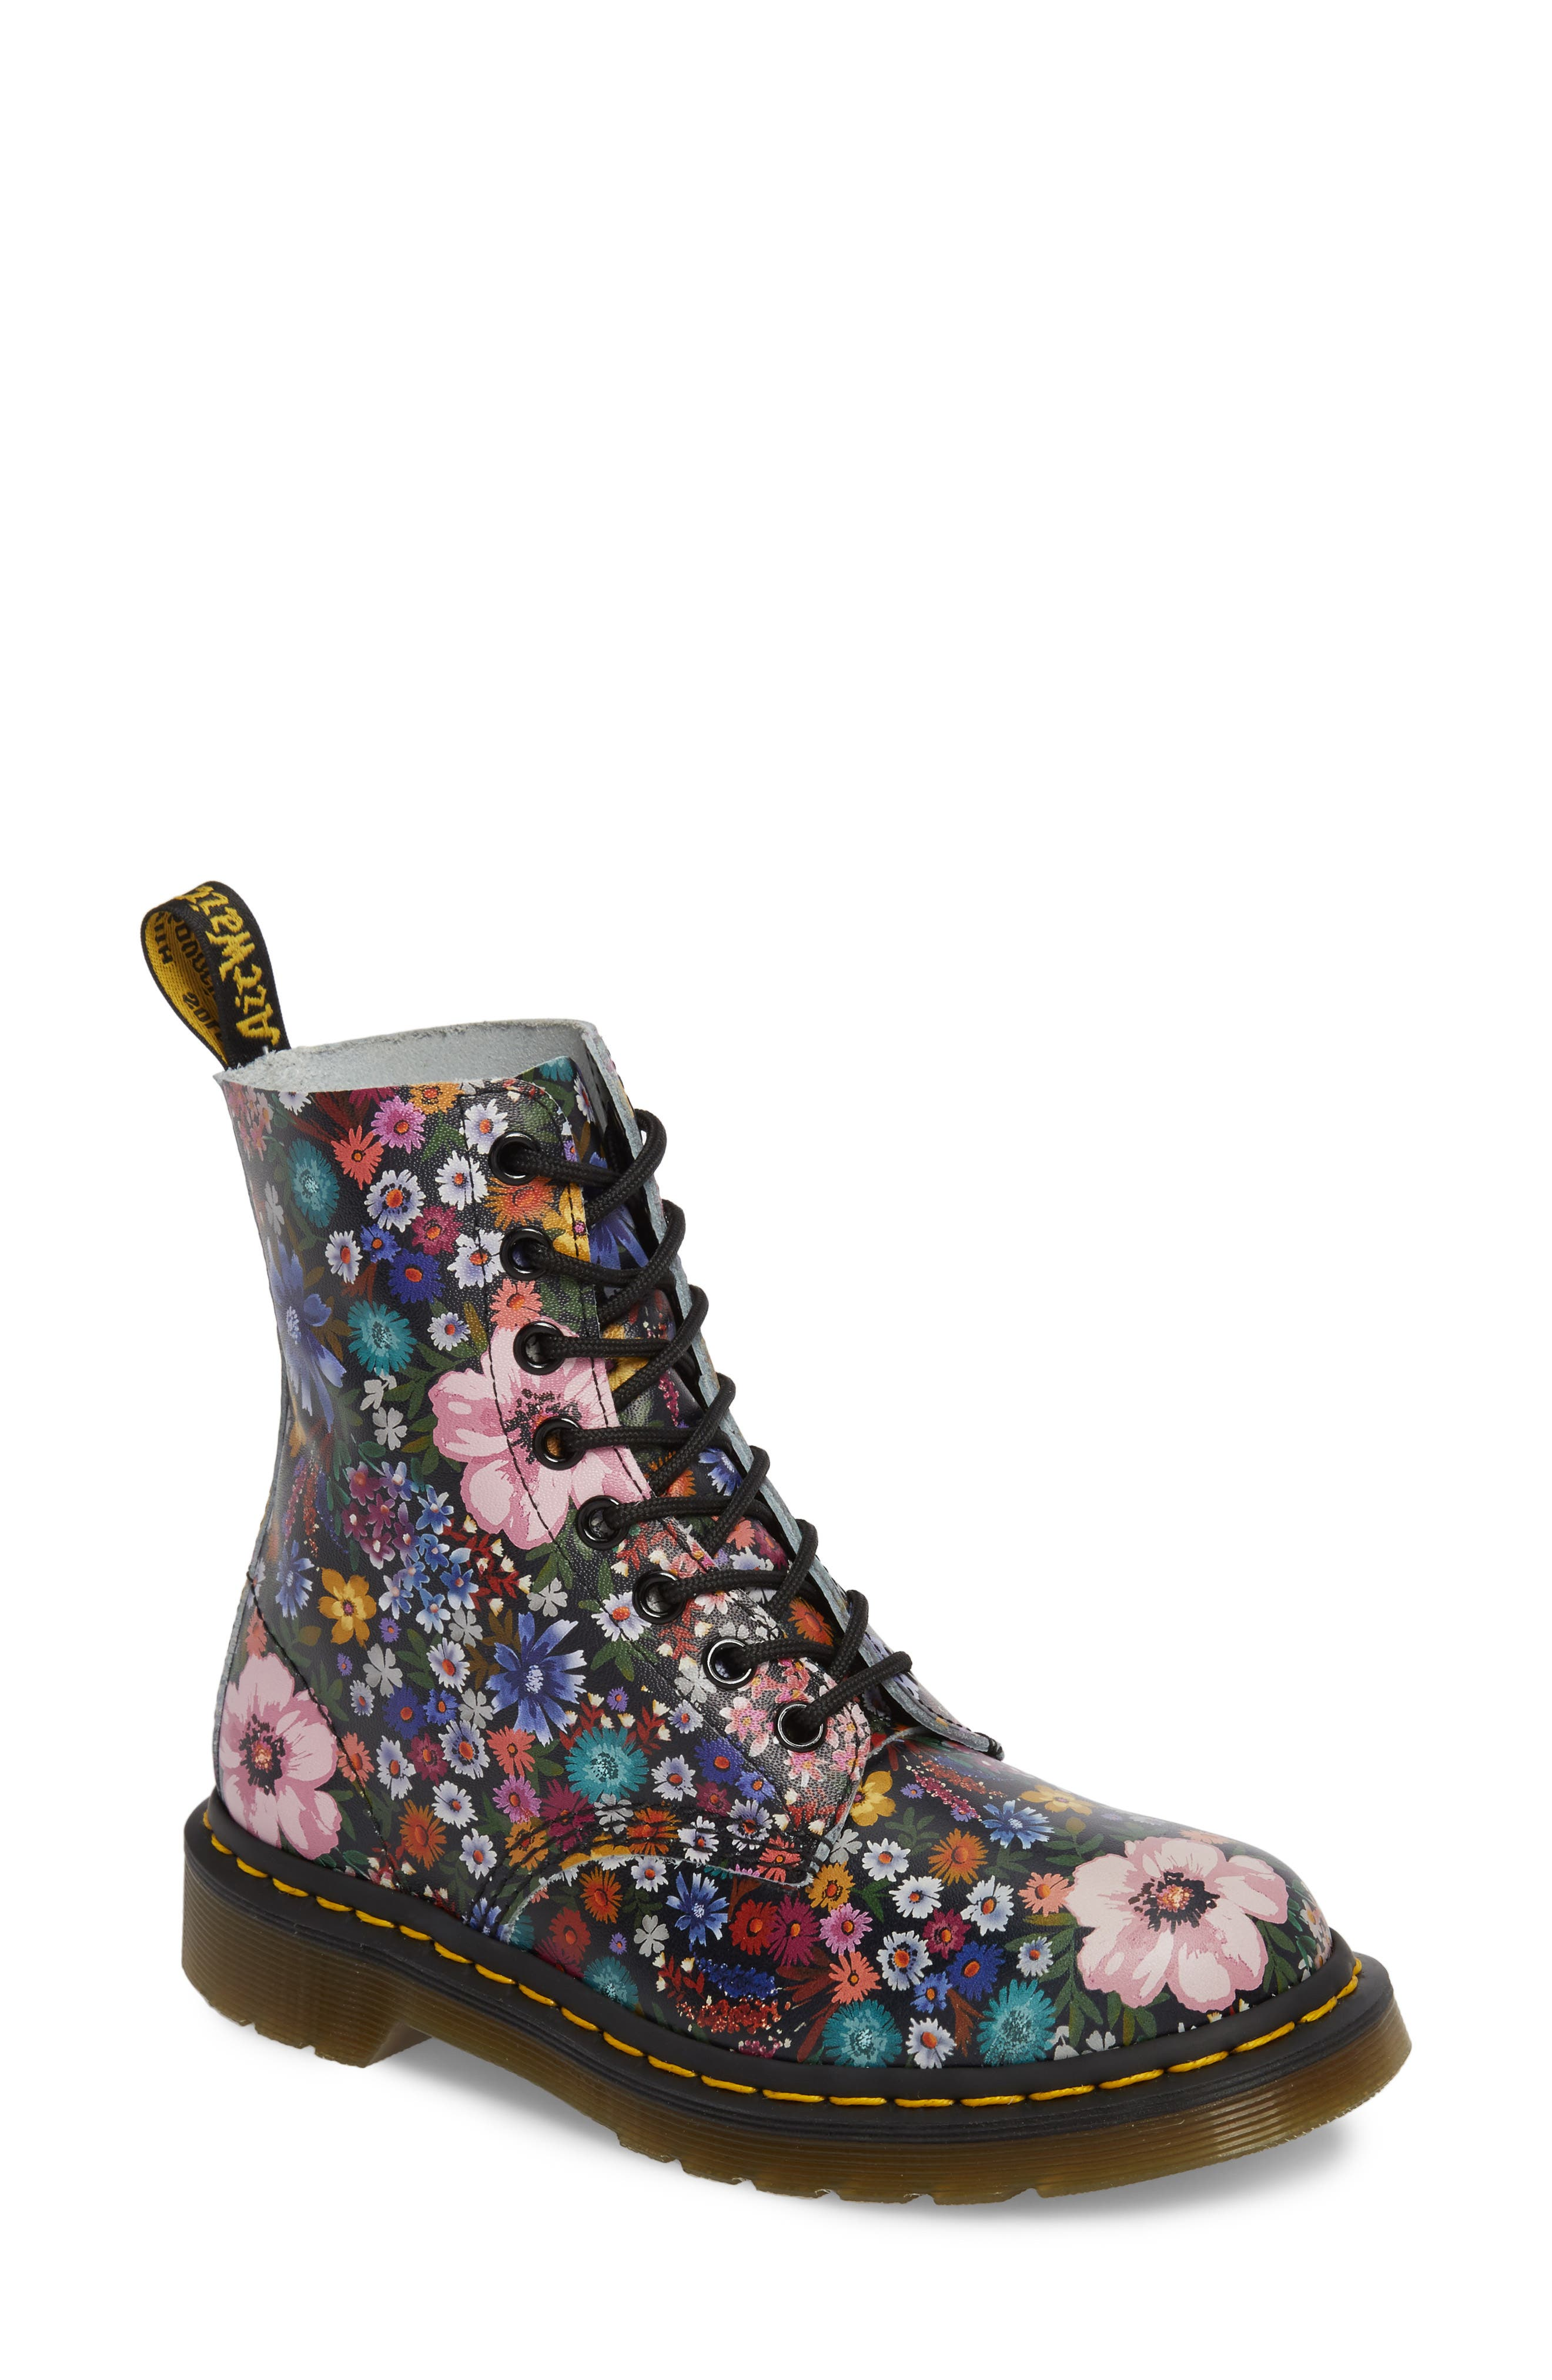 Pascal Wanderlust Boot,                             Main thumbnail 1, color,                             Black Floral Leather